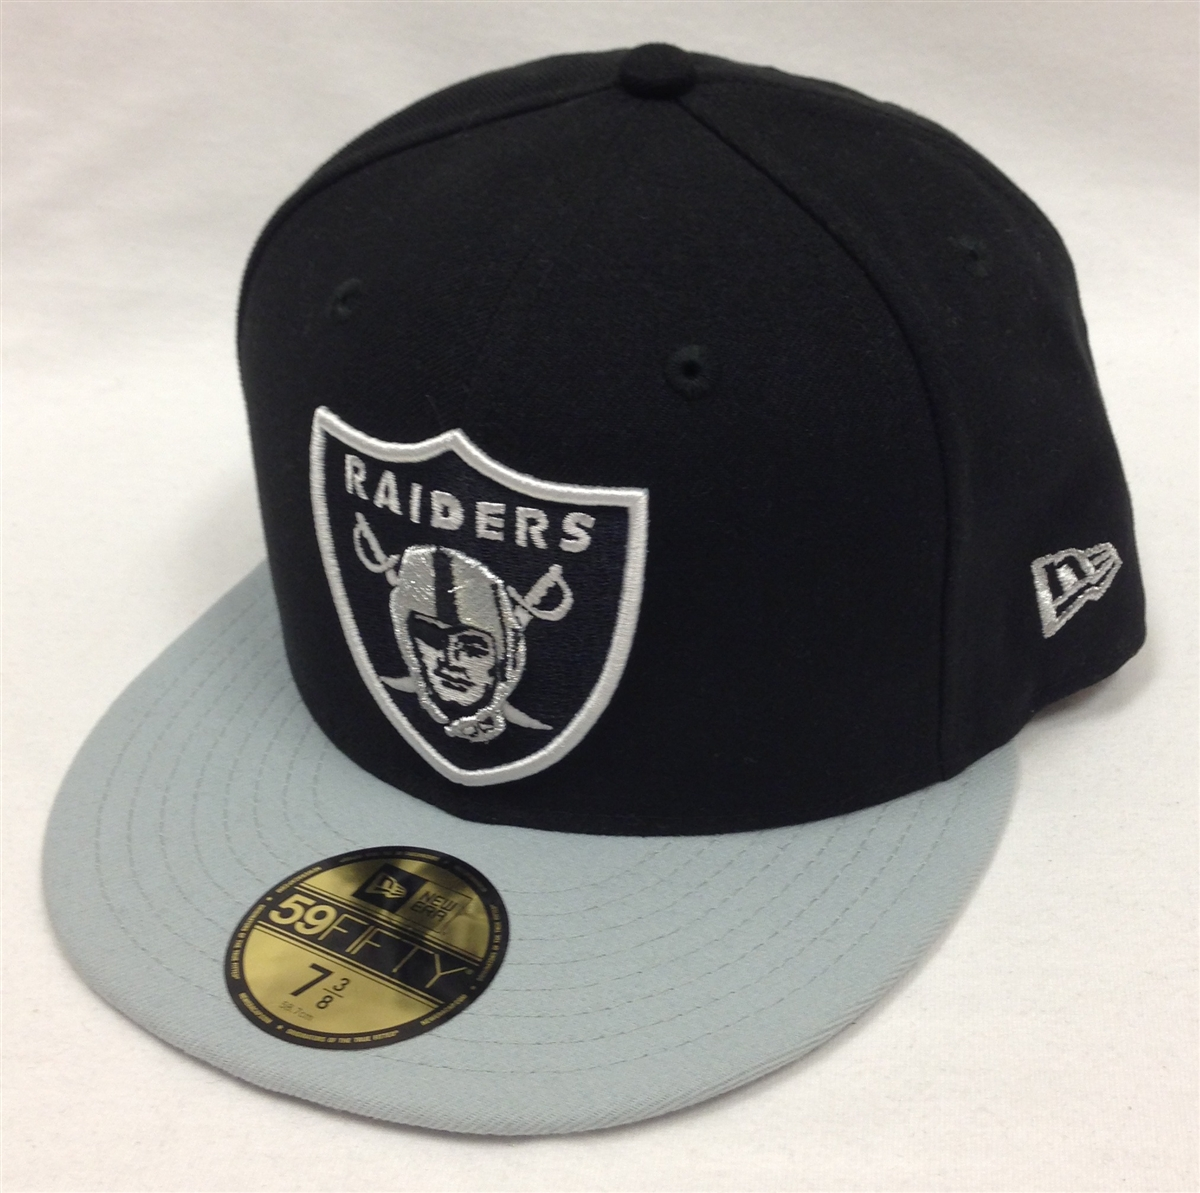 ... inexpensive new era 59fifty black team oakland raiders black gray  fitted cap 6a58f 25d19 a116dc204